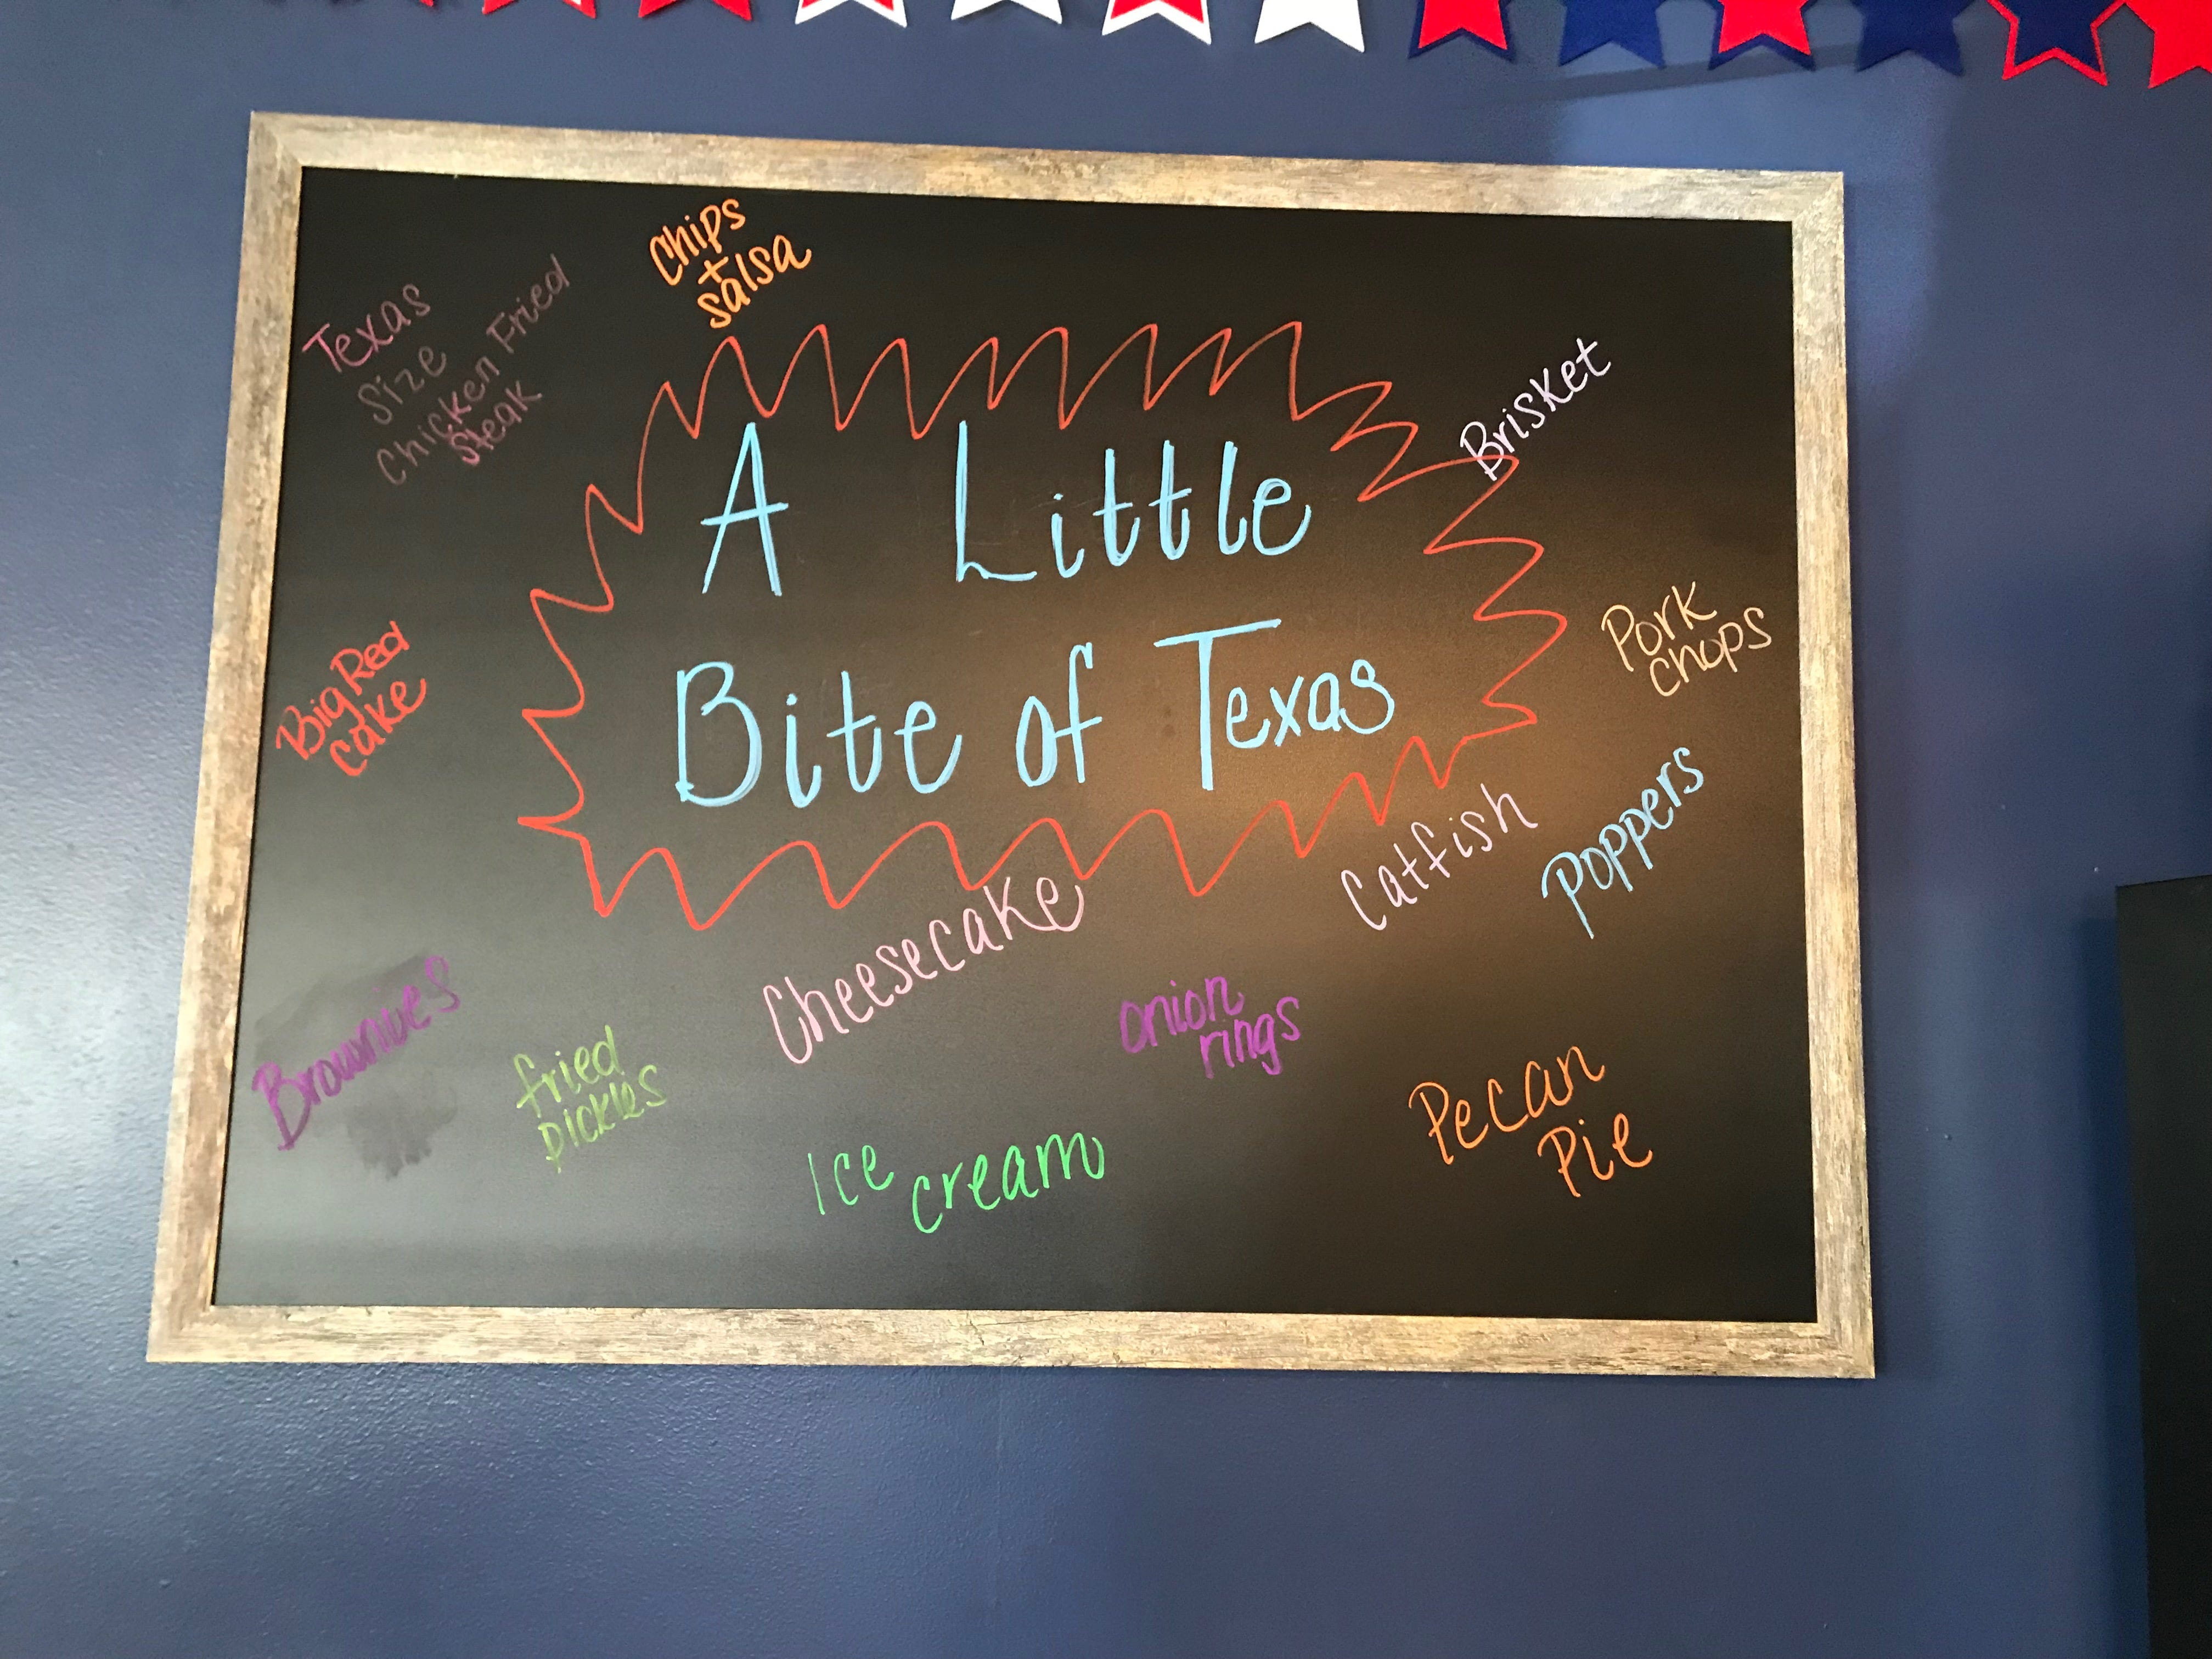 The board at A Little Bite of Texas,1527 East Harris Ave., shows some of their best selling menu items.